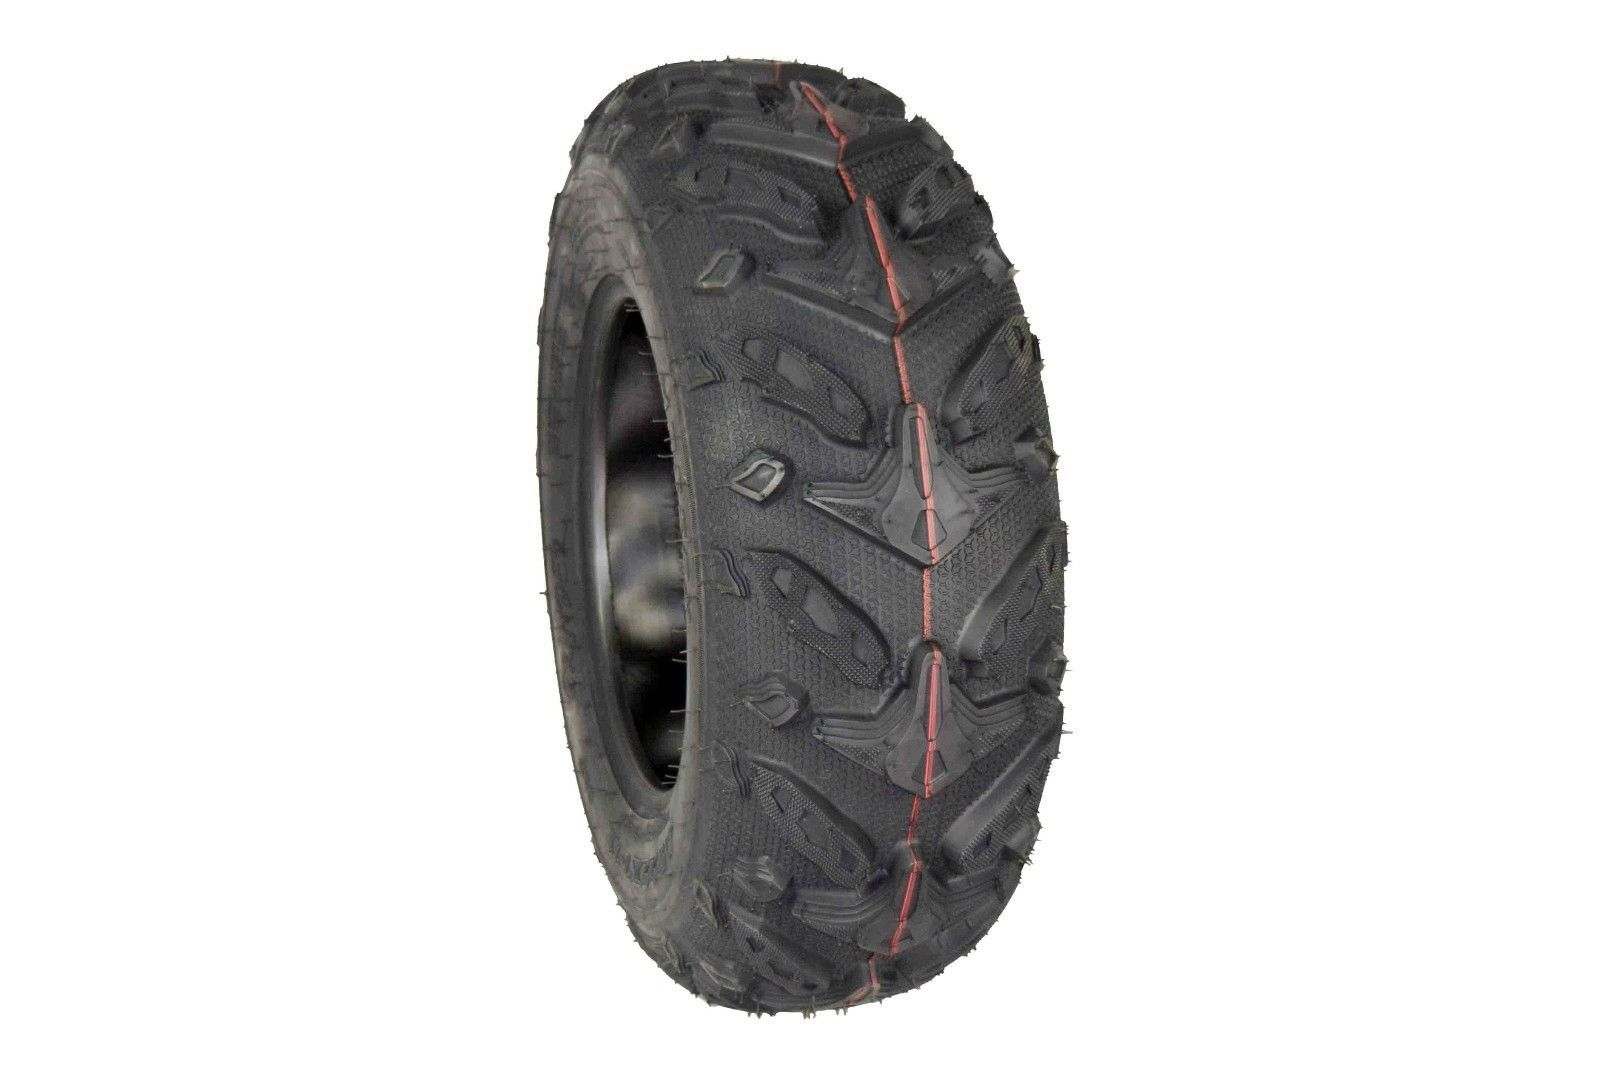 MASSFX-Grinder-22x7-11-Front-22x10-9-Rear-6-ply-ATV-Tires-Set-image-3